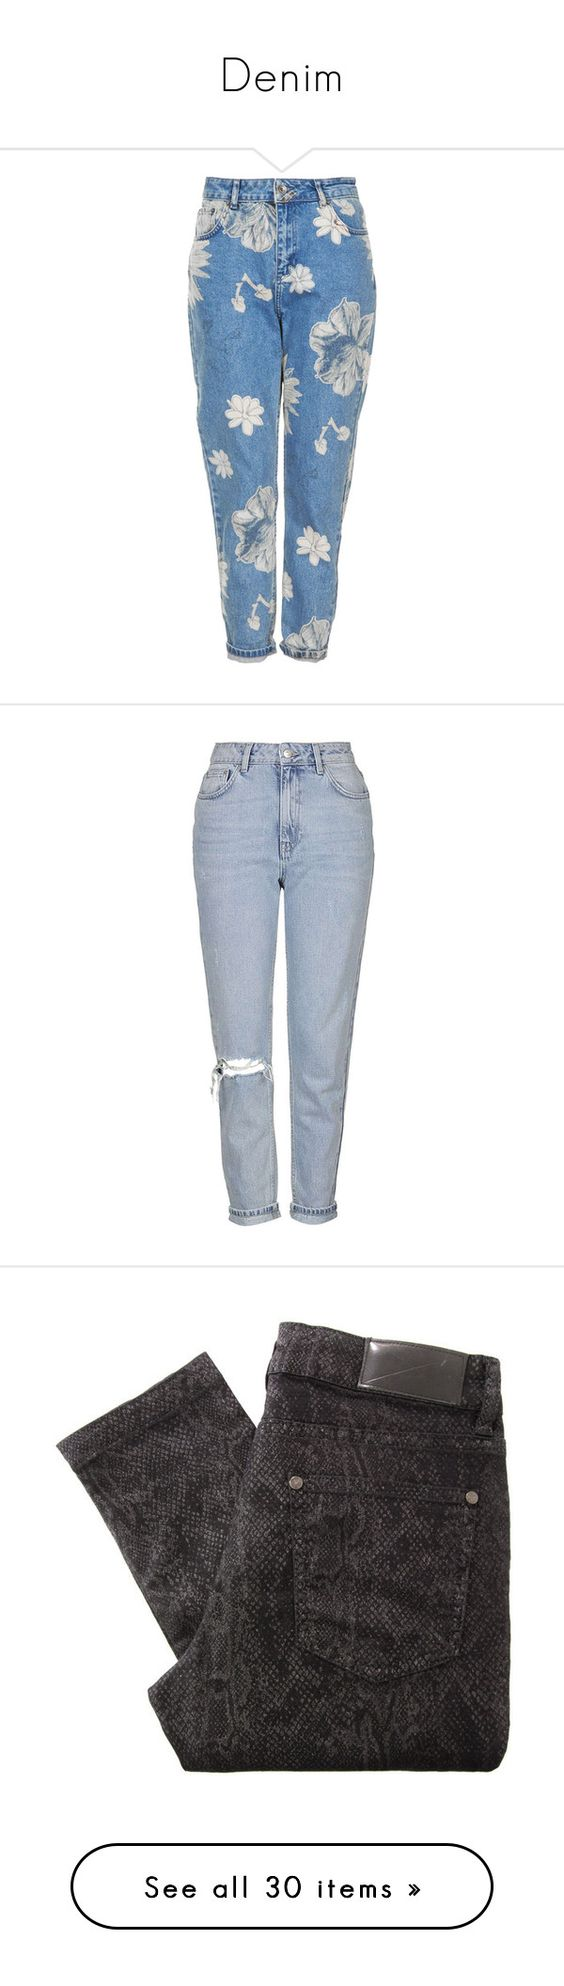 """""""Denim"""" by emmarussell84 ❤ liked on Polyvore featuring denim, jeans, pants, bottoms, trousers, mid stone, blue high waisted jeans, floral skinny jeans, high waisted jeans and blue floral jeans"""